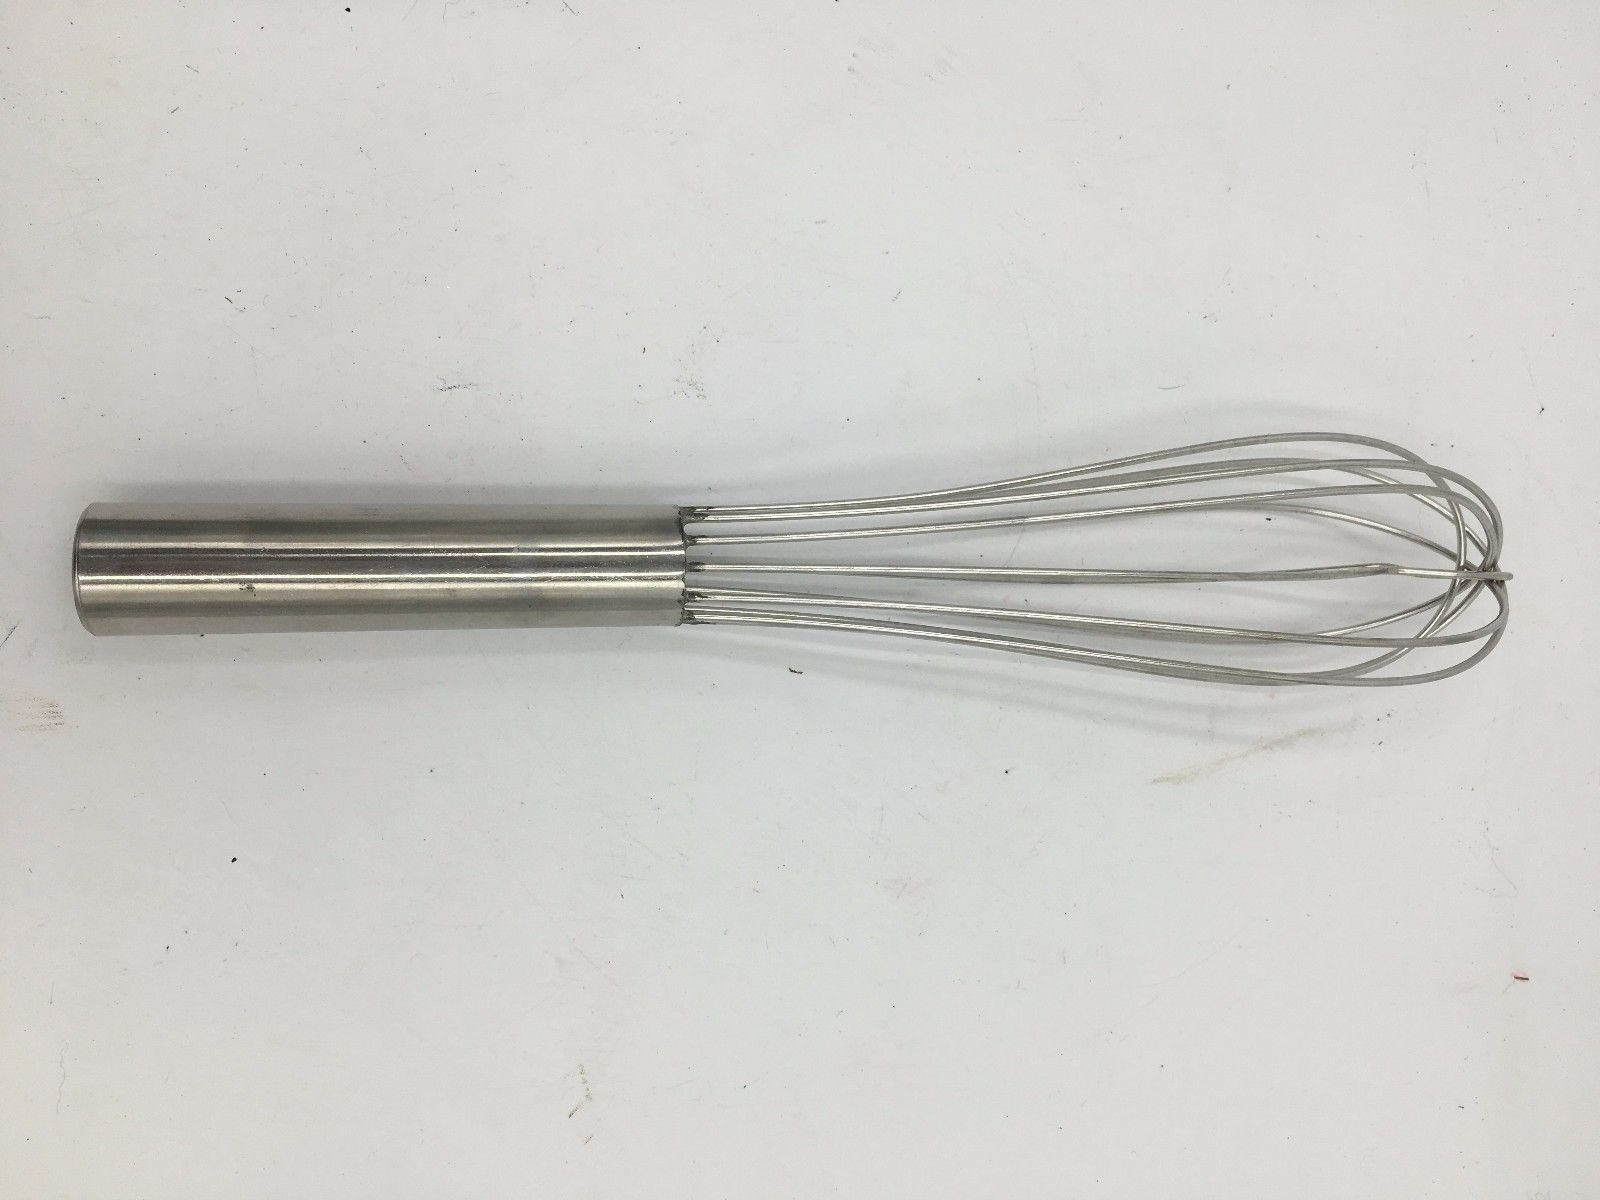 Vintage Bloomfield 18-8 Stainless Steel Wire and 50 similar items